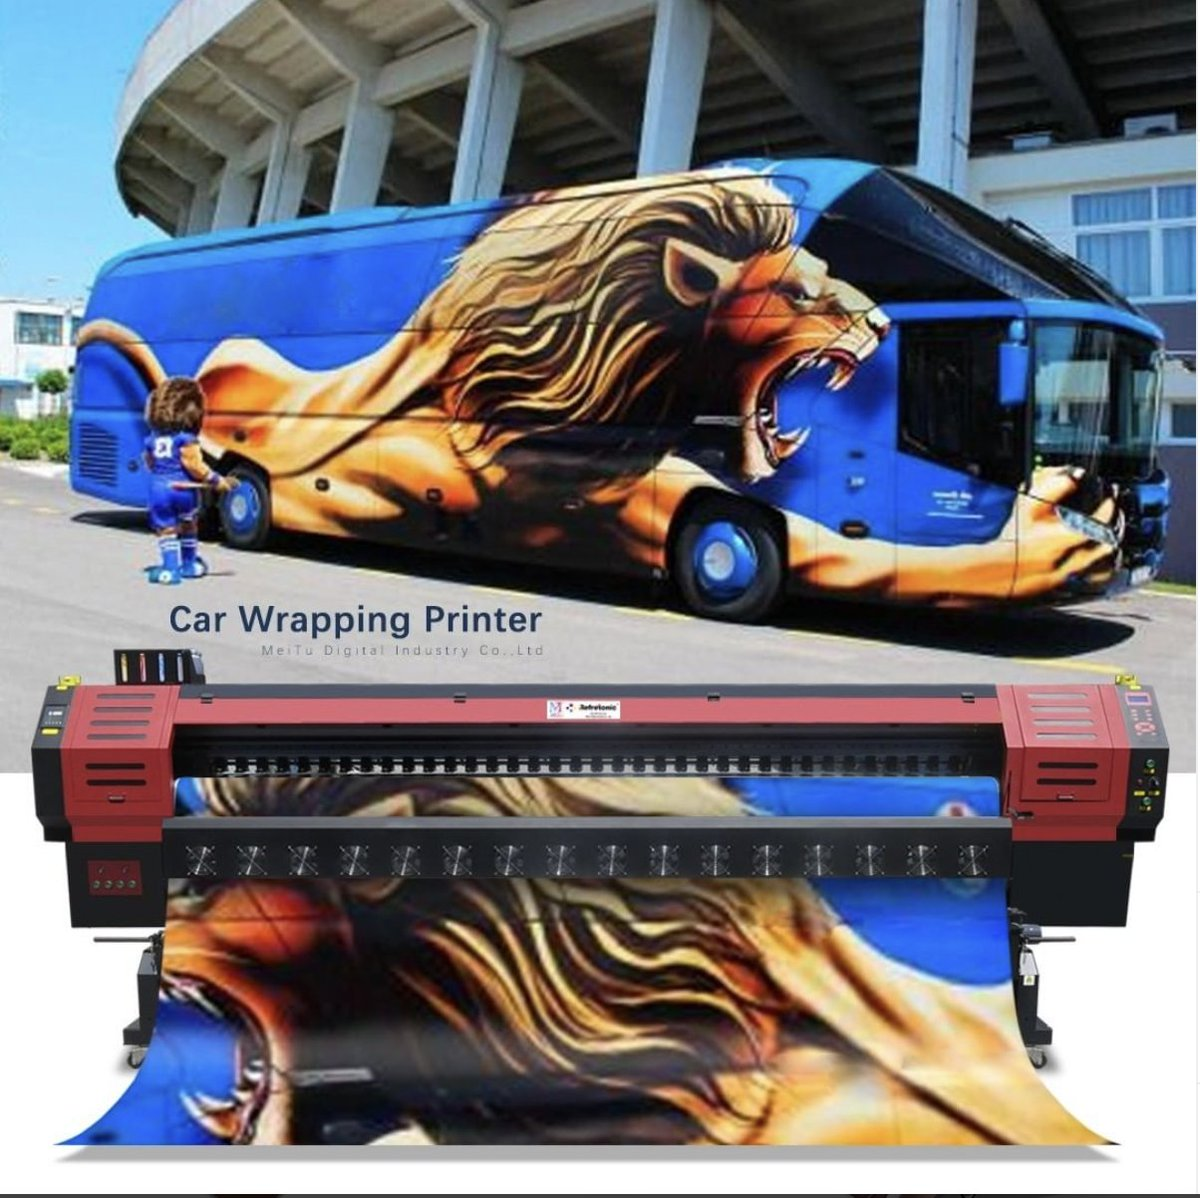 #ecosolventprinter #flexprinting #bannerprinting #substrateprinting #pvcprinting,#printadvertising, #wallpaperprinting, #flagprinting, #wrapprint, #printposter,  #vinylprinting,  If You Are Interested In Our Printing Machine.  Please Contact US Now!  0086 136 3662 7448 (WhatsApp)